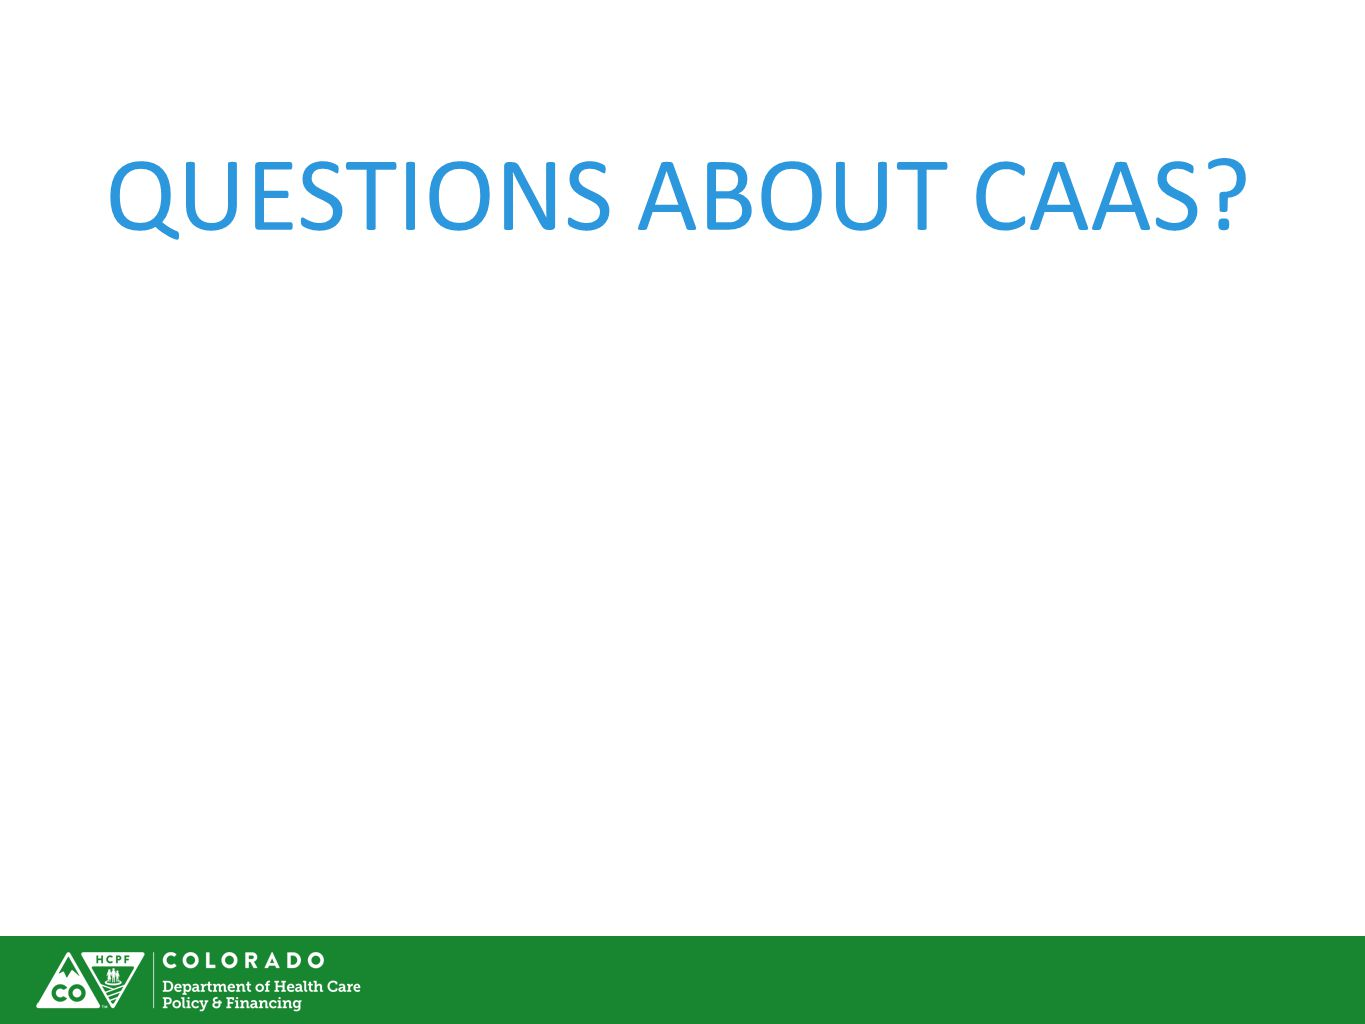 QUESTIONS ABOUT CAAS?